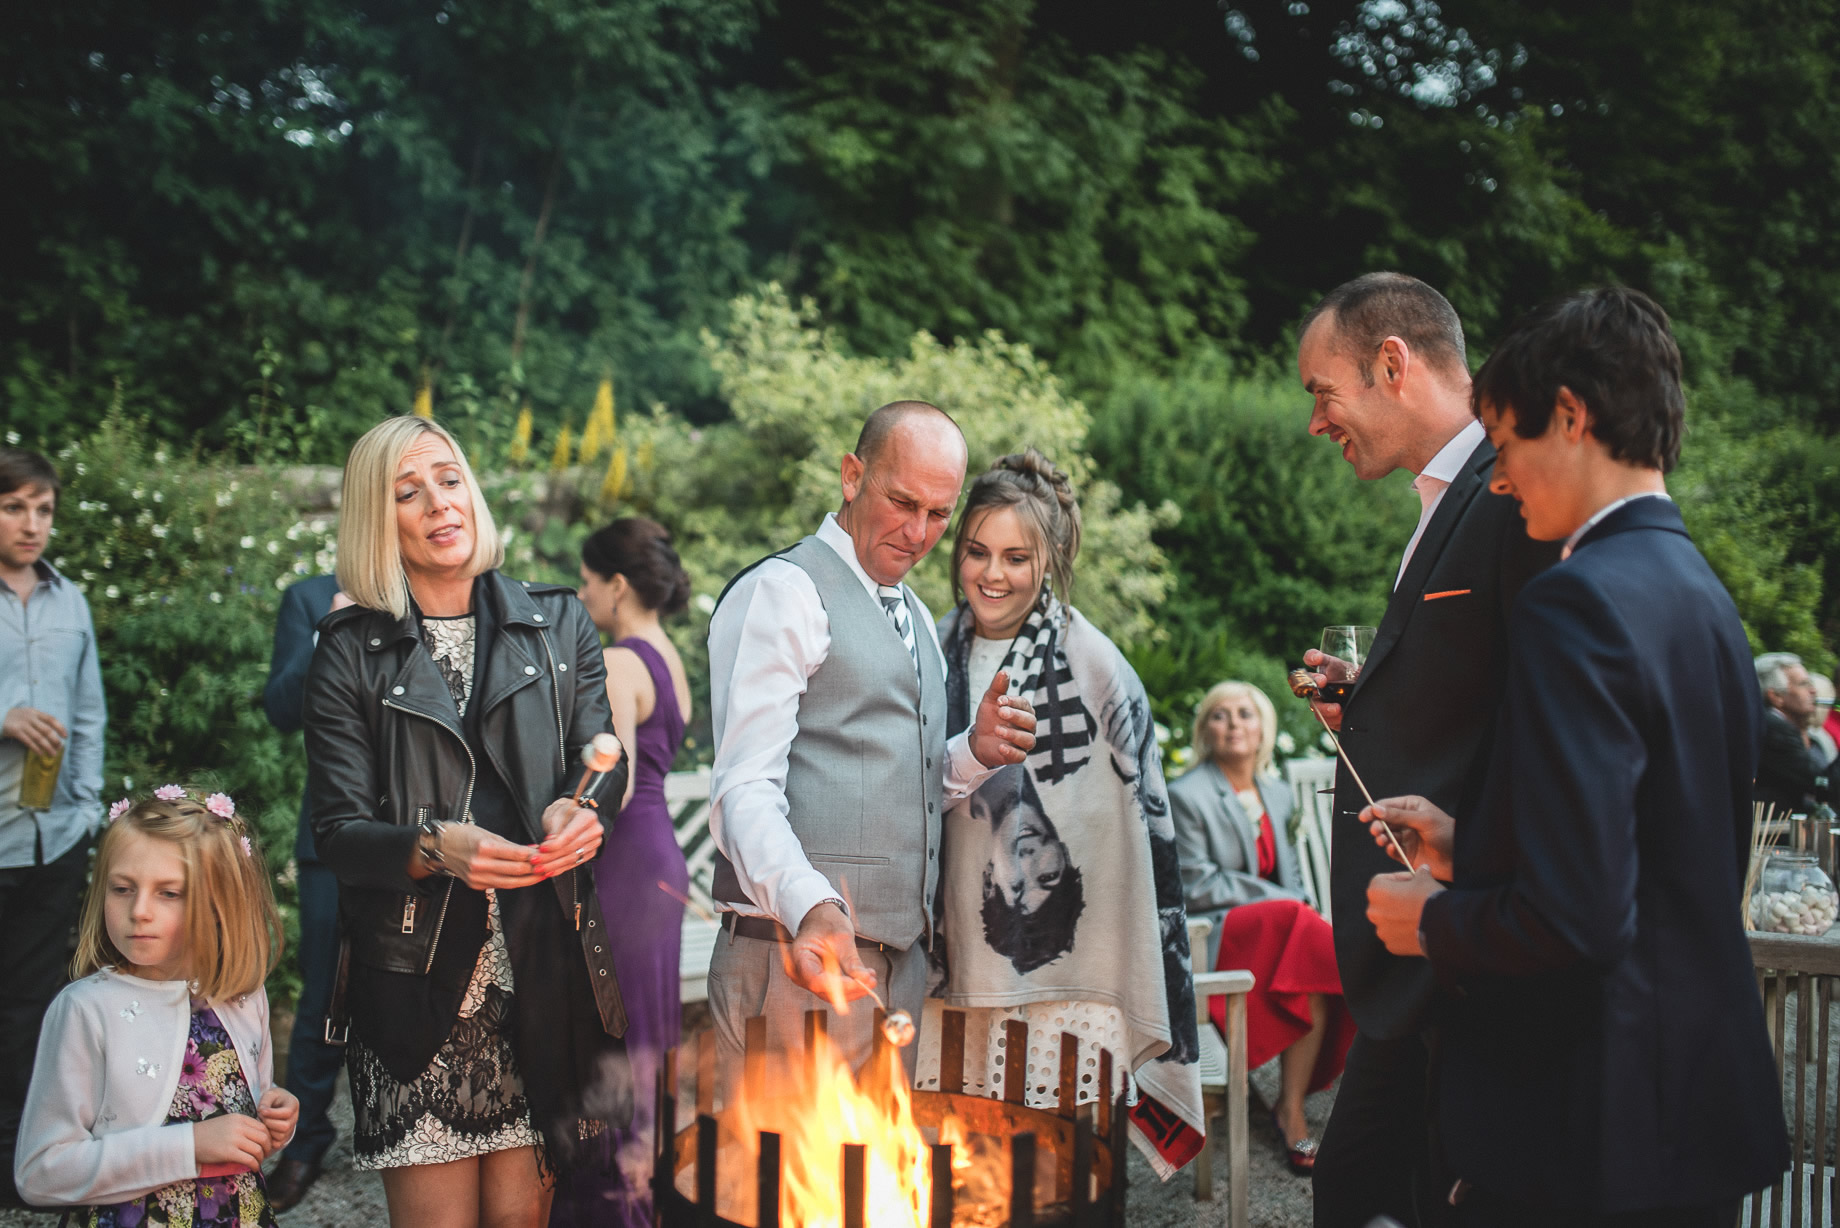 Tess and Paul's Wedding at The Inn at Whitewell 126